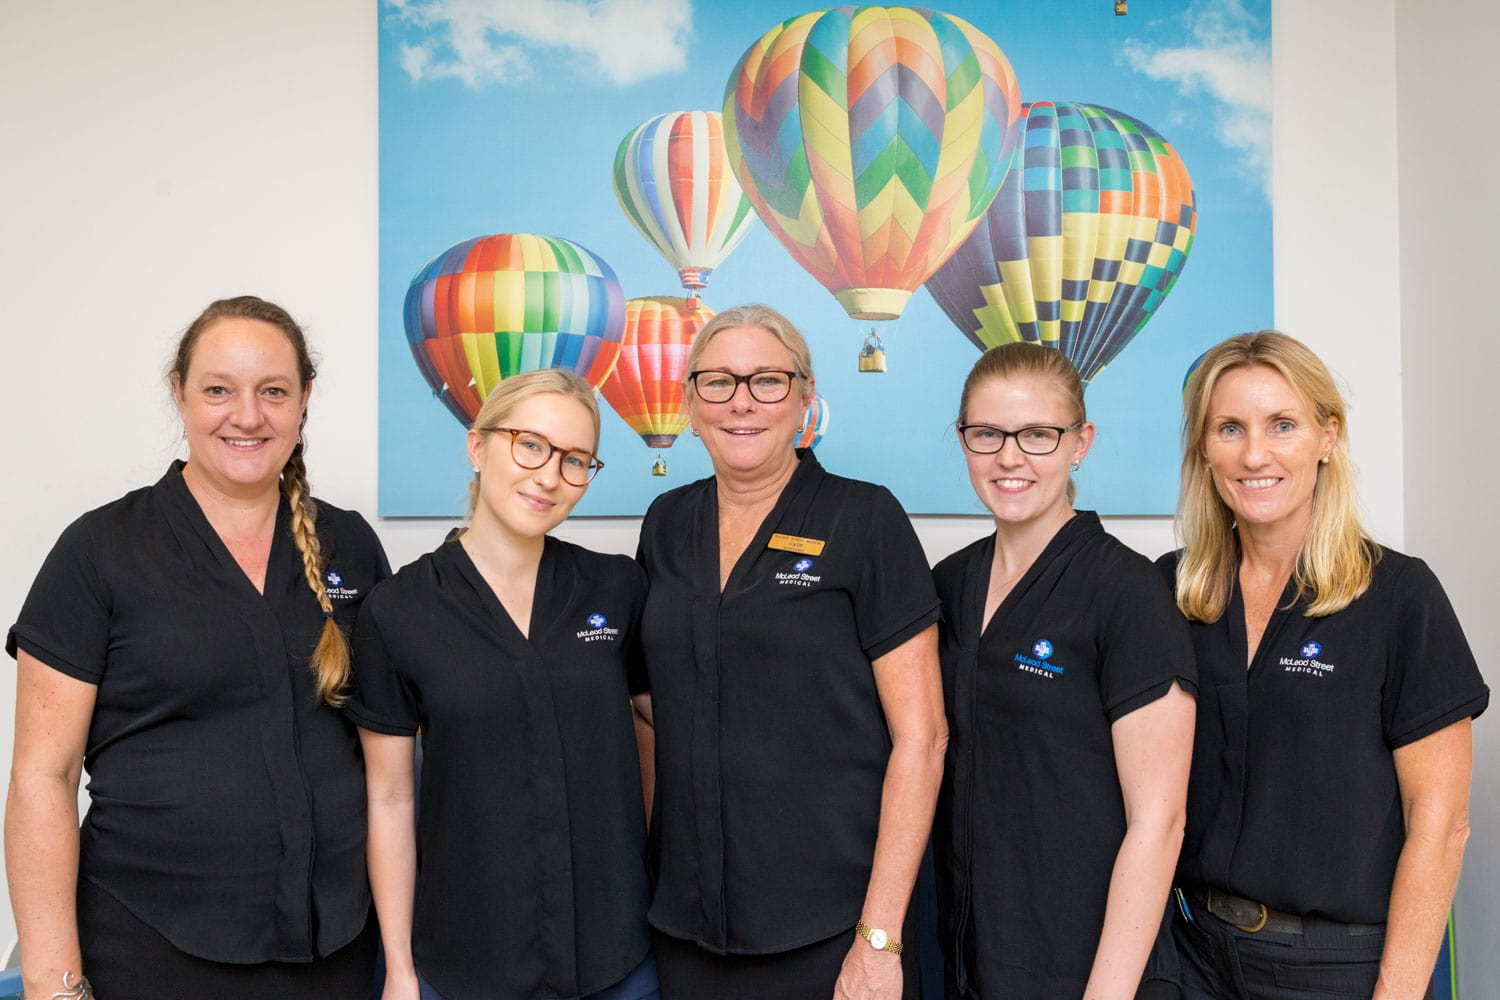 Meet our Team of Friendly Professional Cairns Doctors